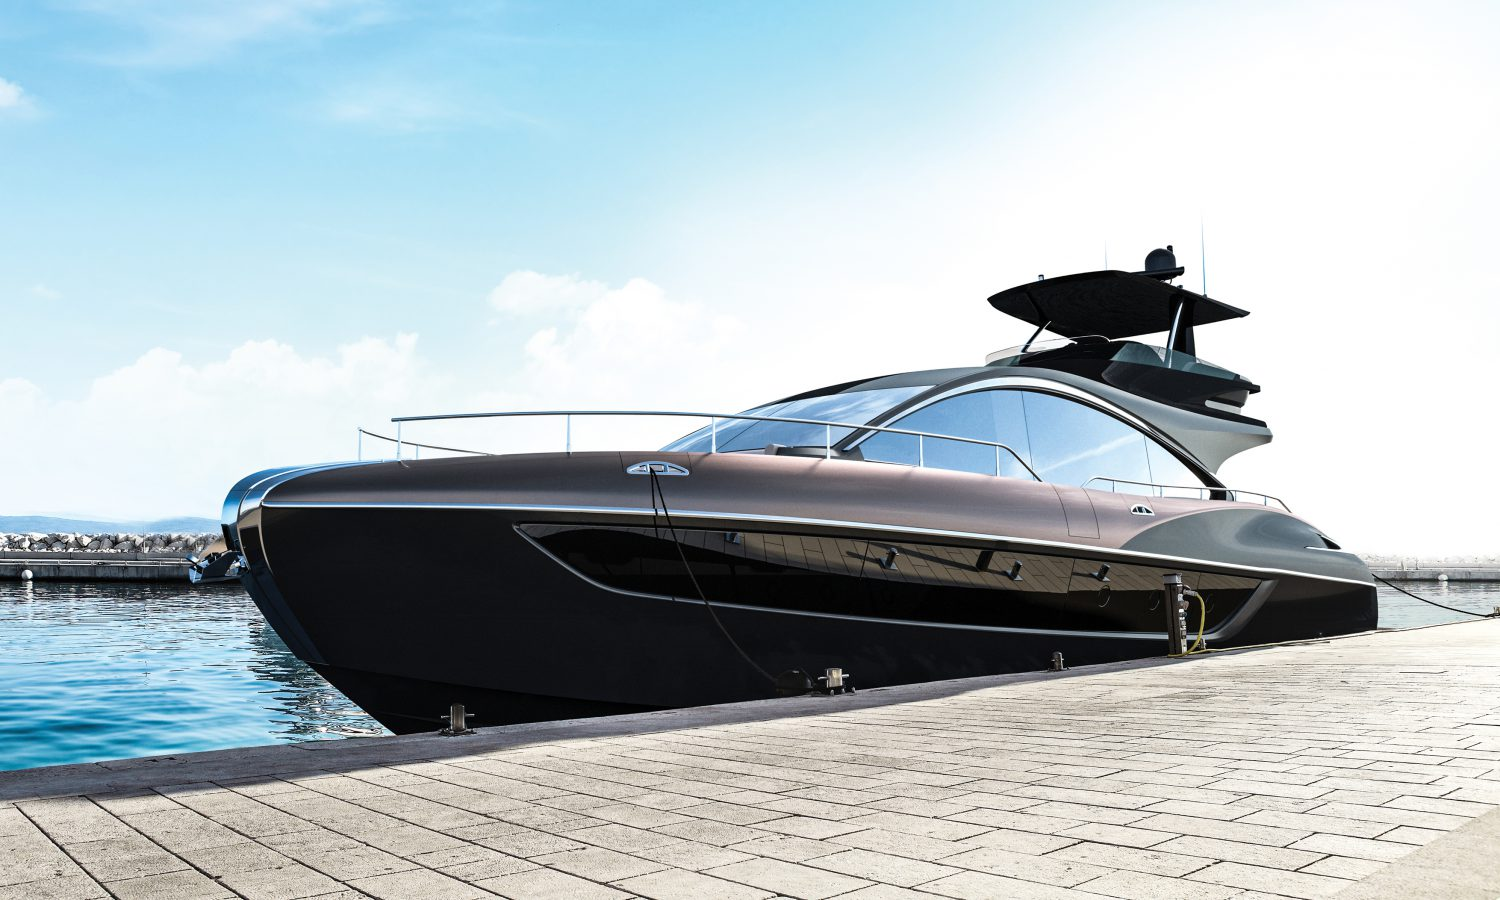 Lexus LY 650 Luxury Yacht Revealed Crafted in the Spirit of Amazing